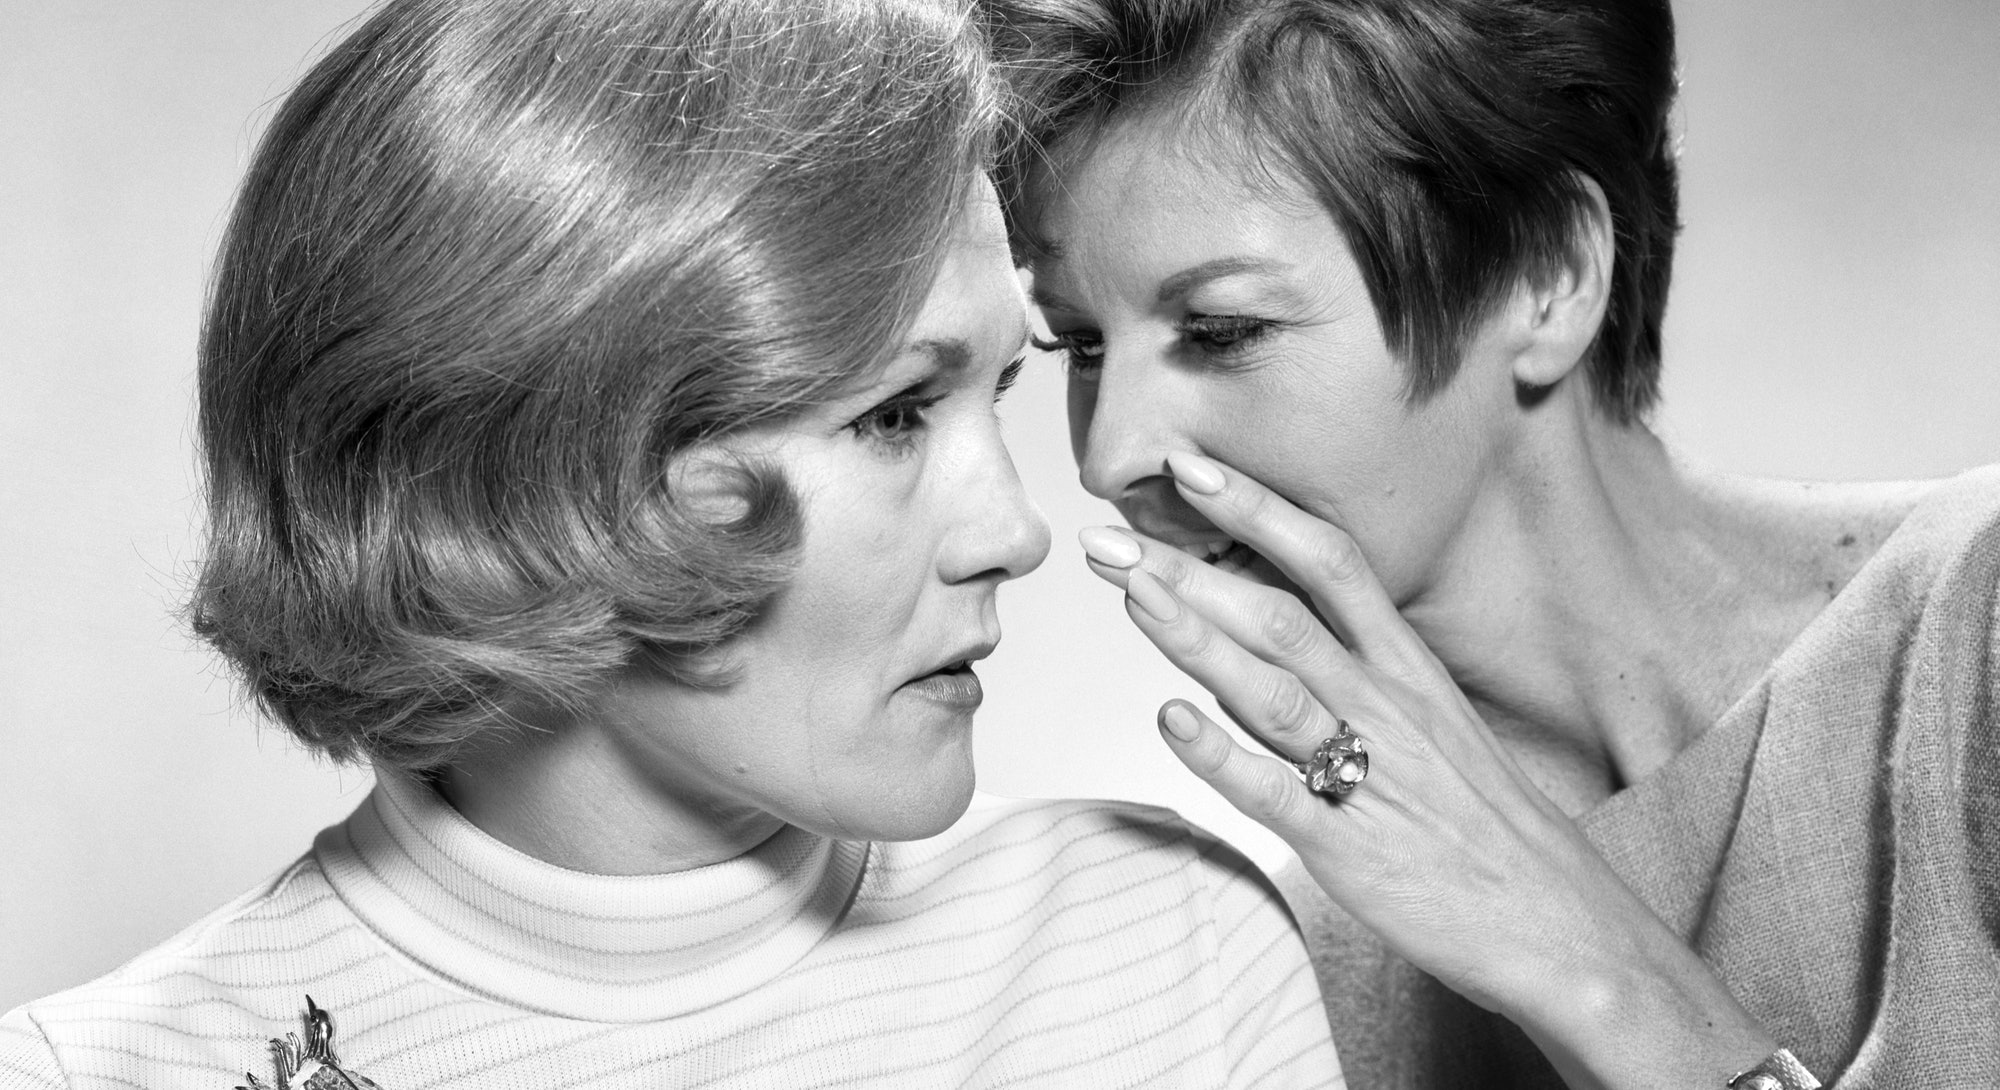 A woman tells her friend a secret. Researchers told the Atlantic that talking quietly could lower covid-19 transmission risk.